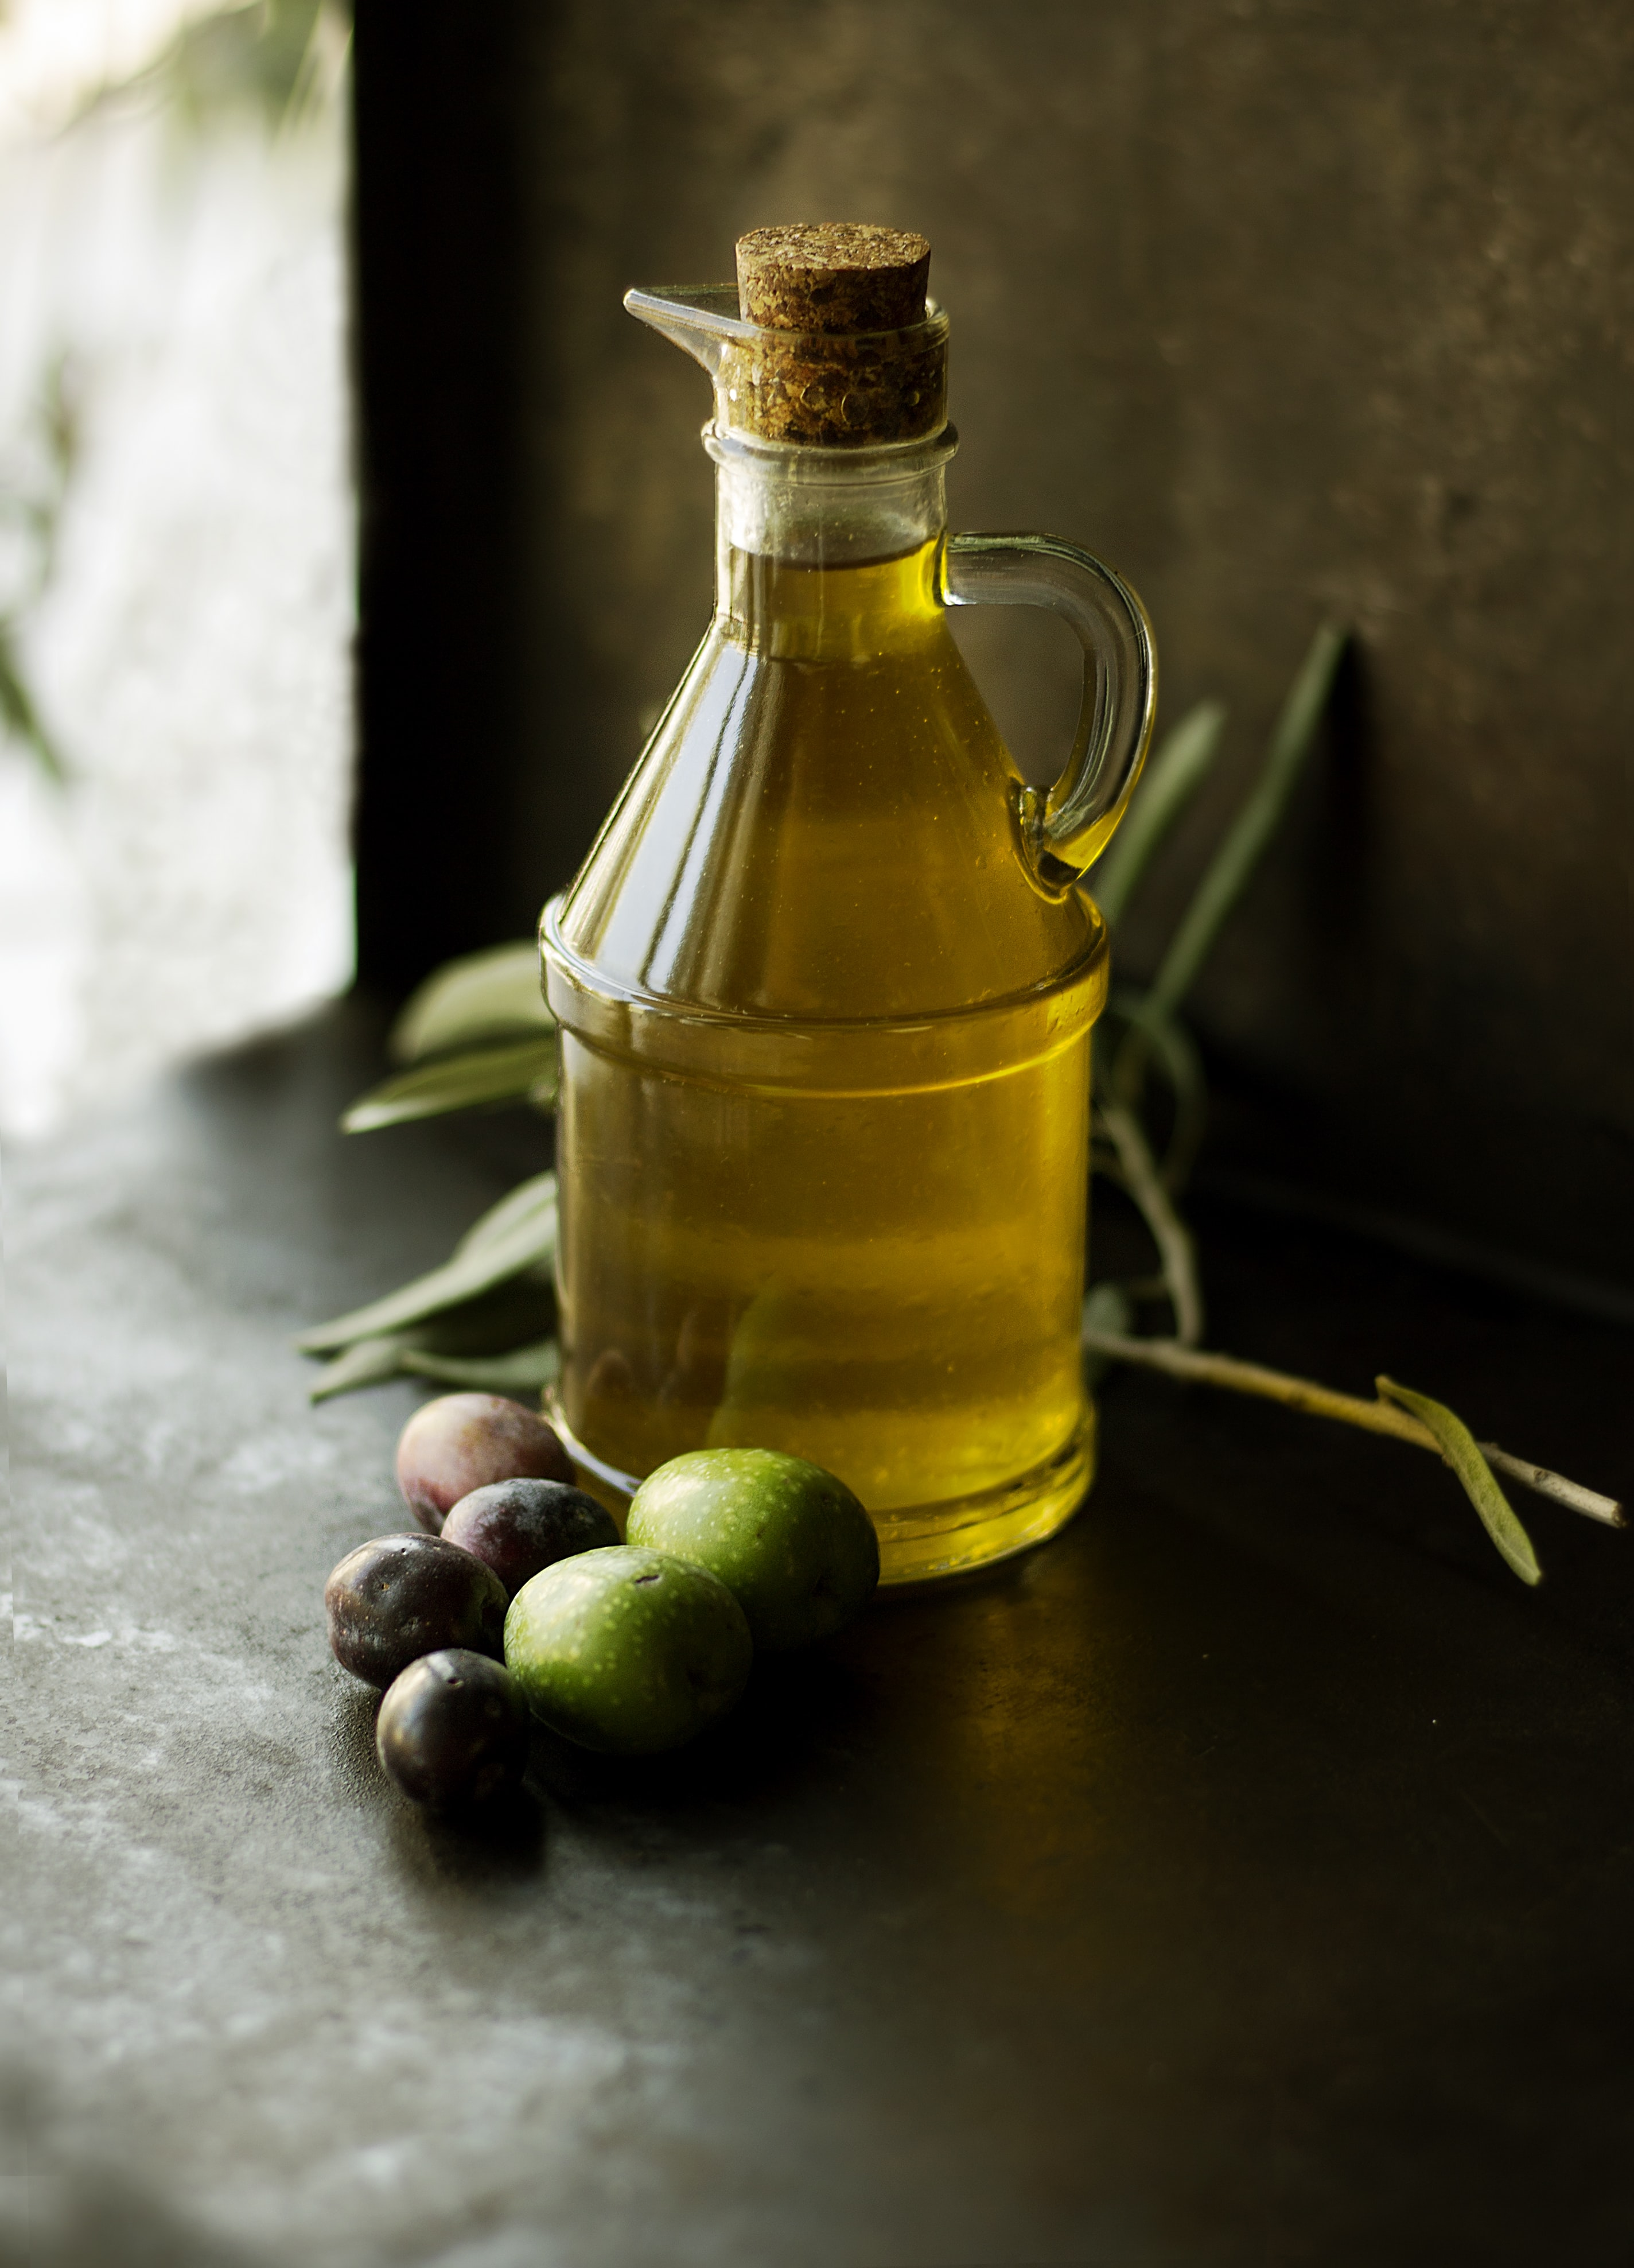 A glass jug of extra virgin olive oil next to some fruit on a table